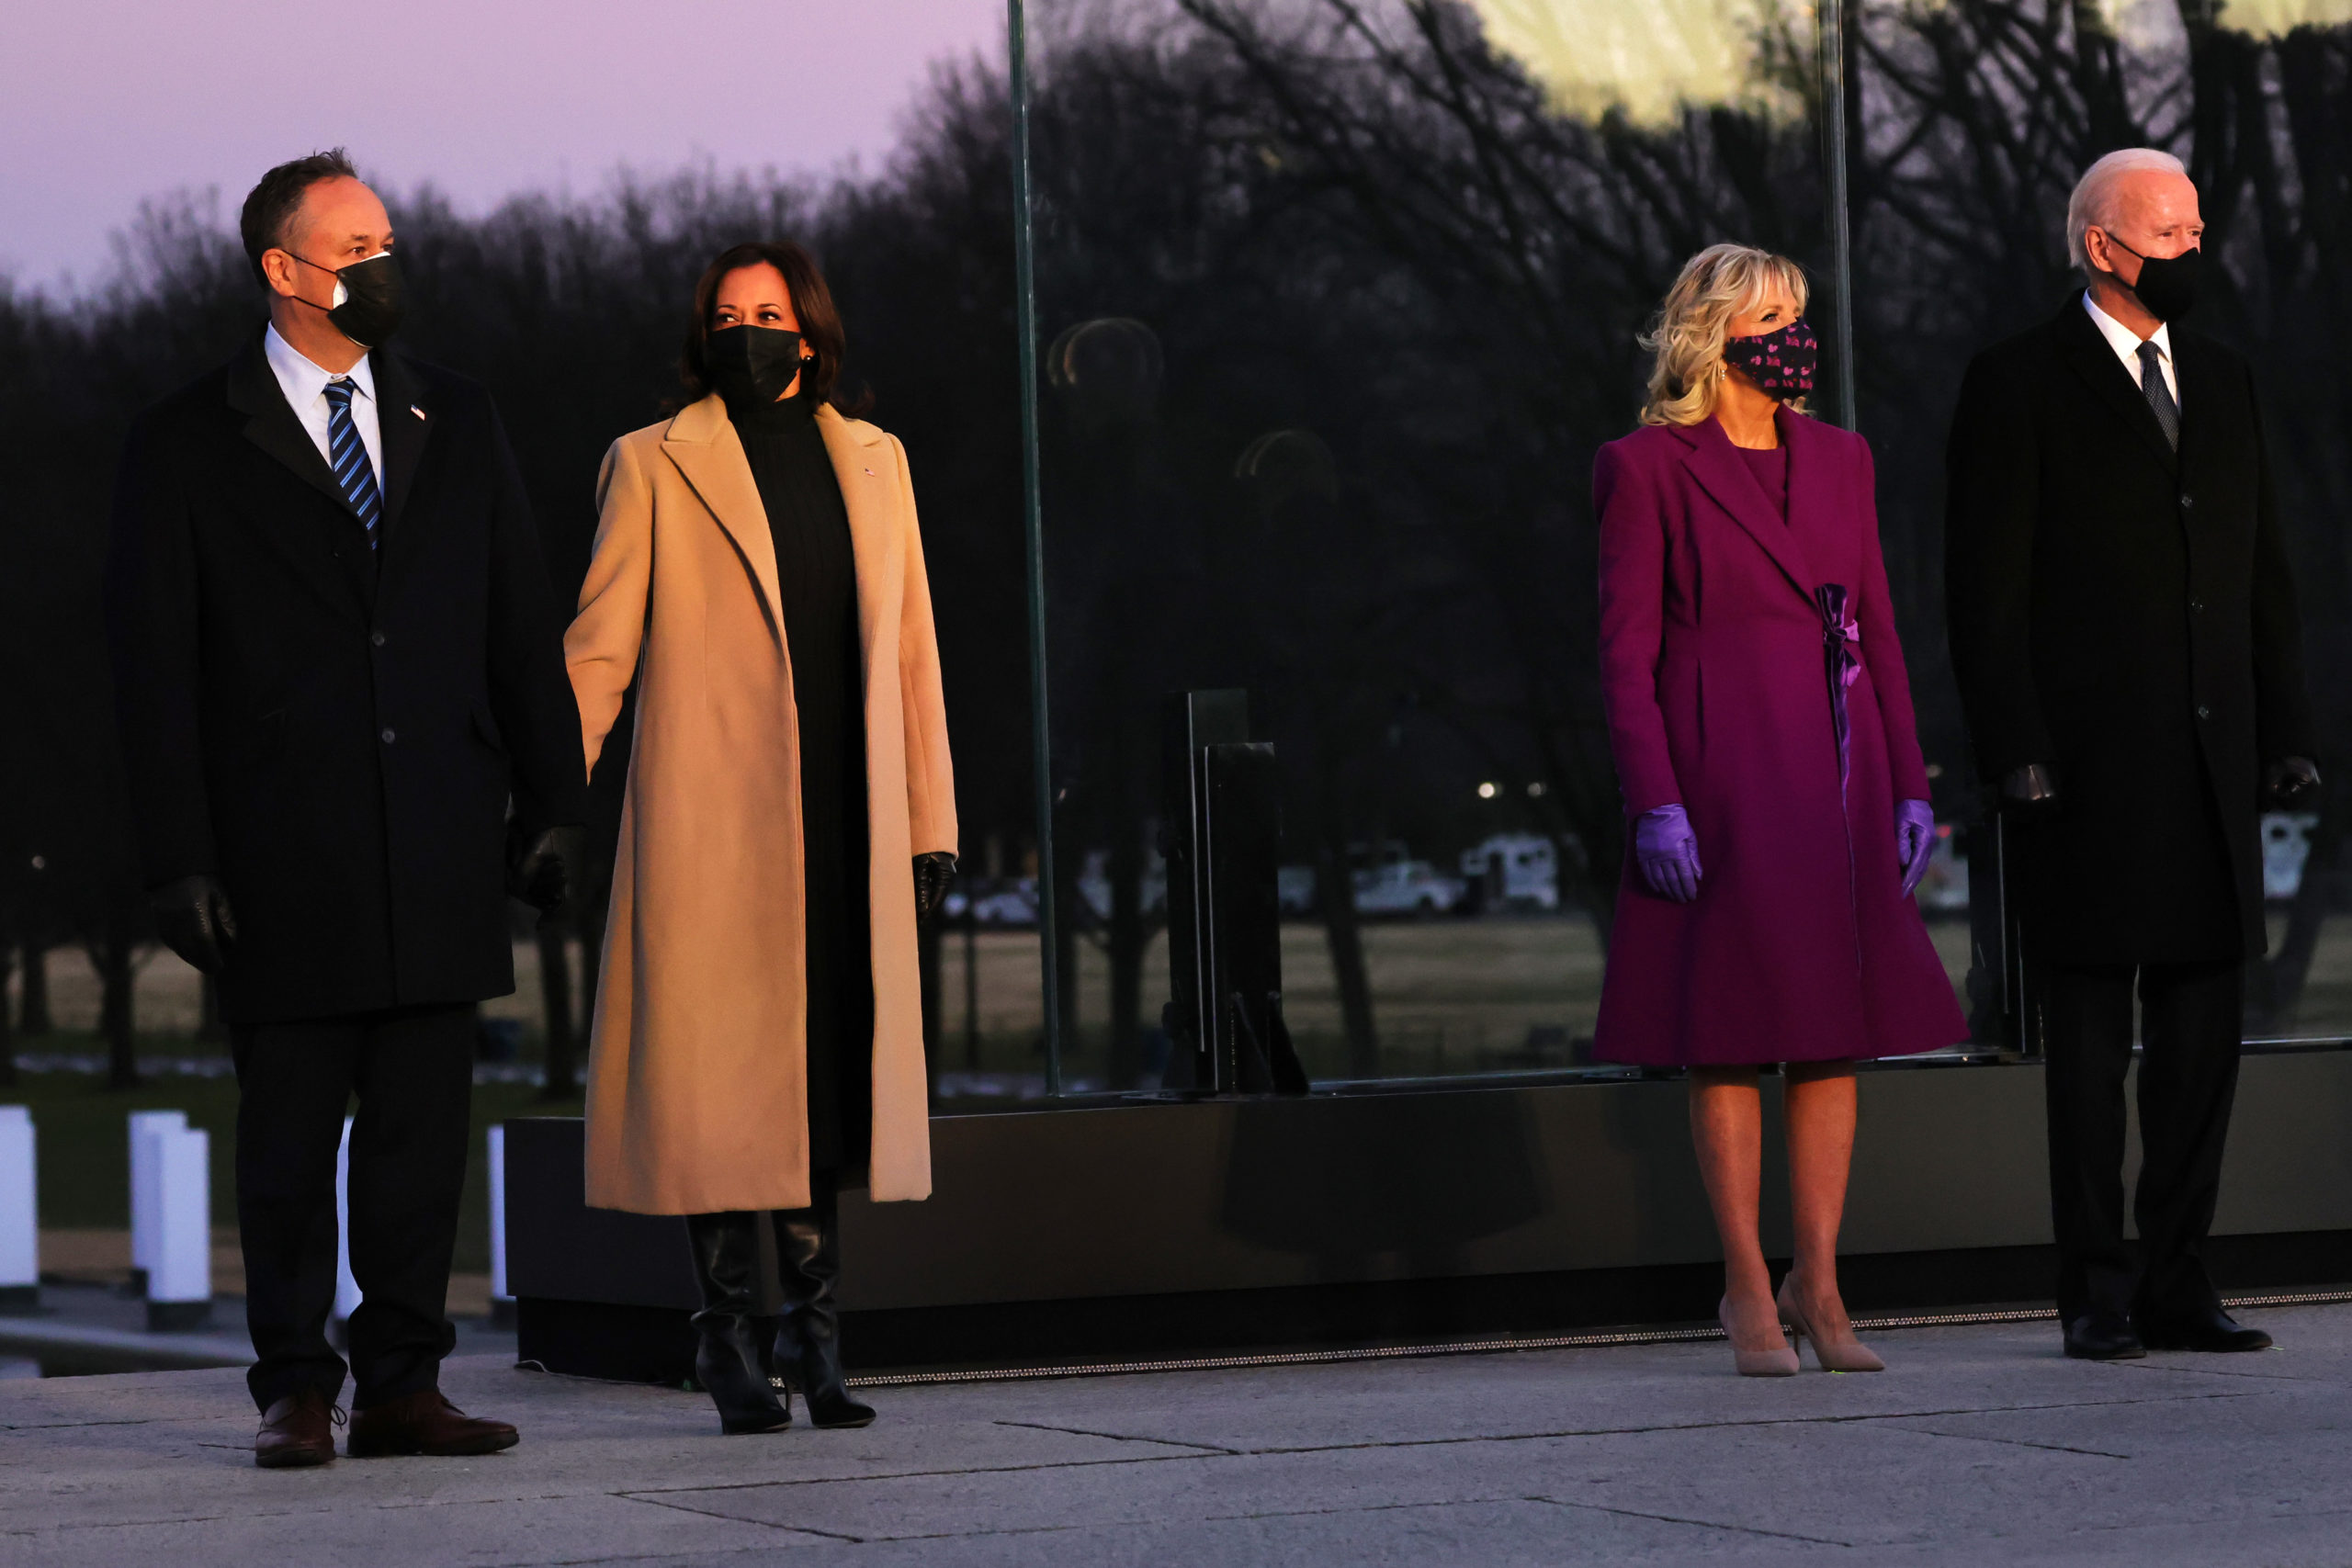 Doug Emhoff, Vice President-elect Kamala Harris, Dr. Jill Biden and President-elect Joe Biden at a memorial for victims of the coronavirus (COVID-19) pandemic at the Lincoln Memorial on the eve of the presidential inauguration on January 19, 2021 in Washington, DC. (Michael M. Santiago/Getty Images)